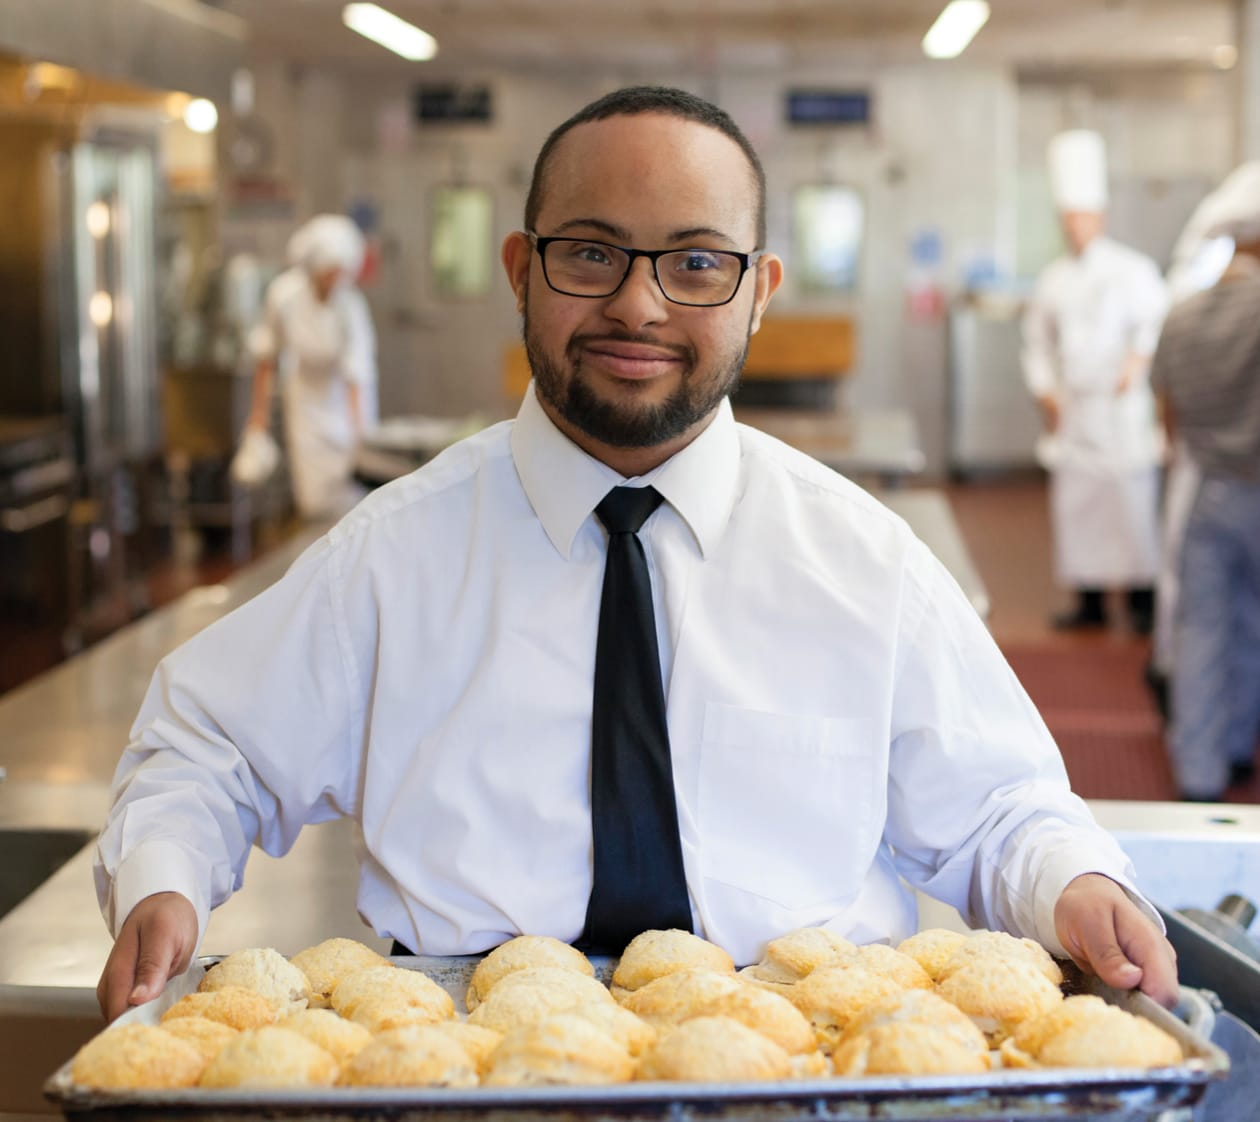 portrait of a smiling man in a tie holding a tray of pastries